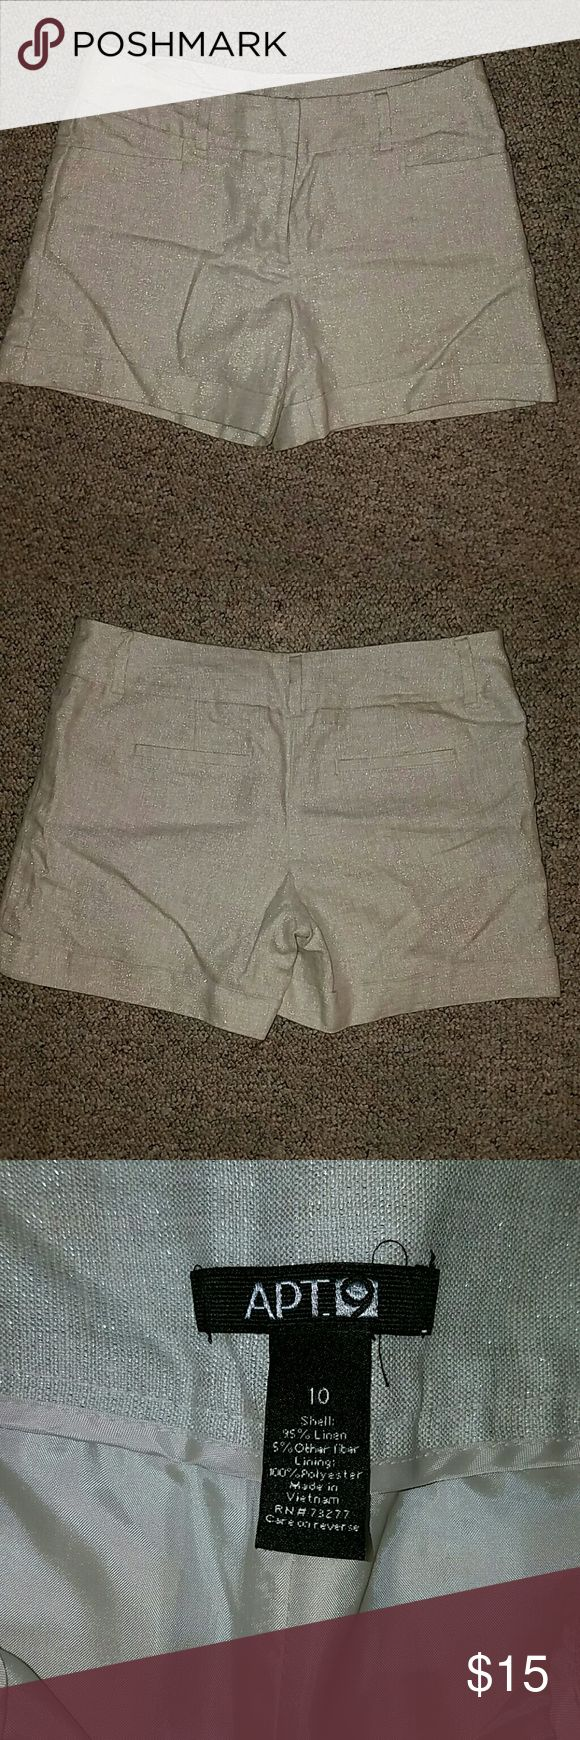 Cream sparkle shorts Apt 9 size 10 cream sparkle shorts in new condition! Super cute for summer! Apt. 9 Shorts